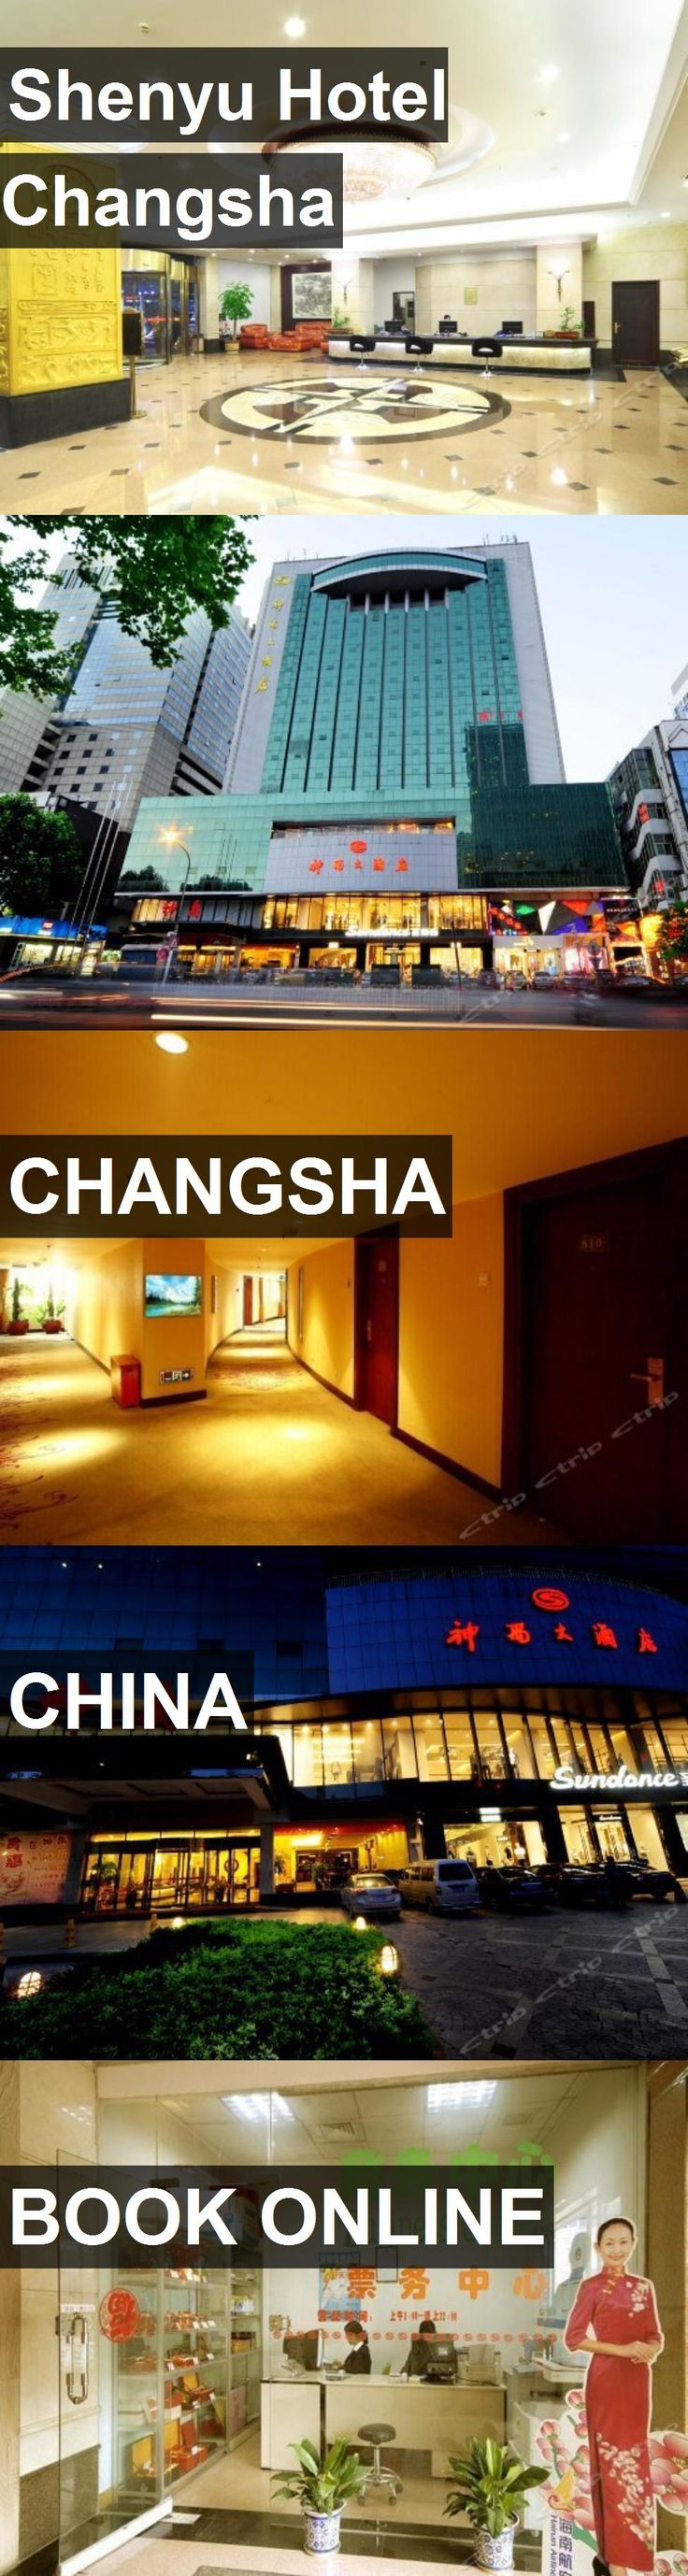 Shenyu Hotel Changsha in Changsha, China. For more information, photos, reviews and best prices please follow the link. #China #Changsha #travel #vacation #hotel